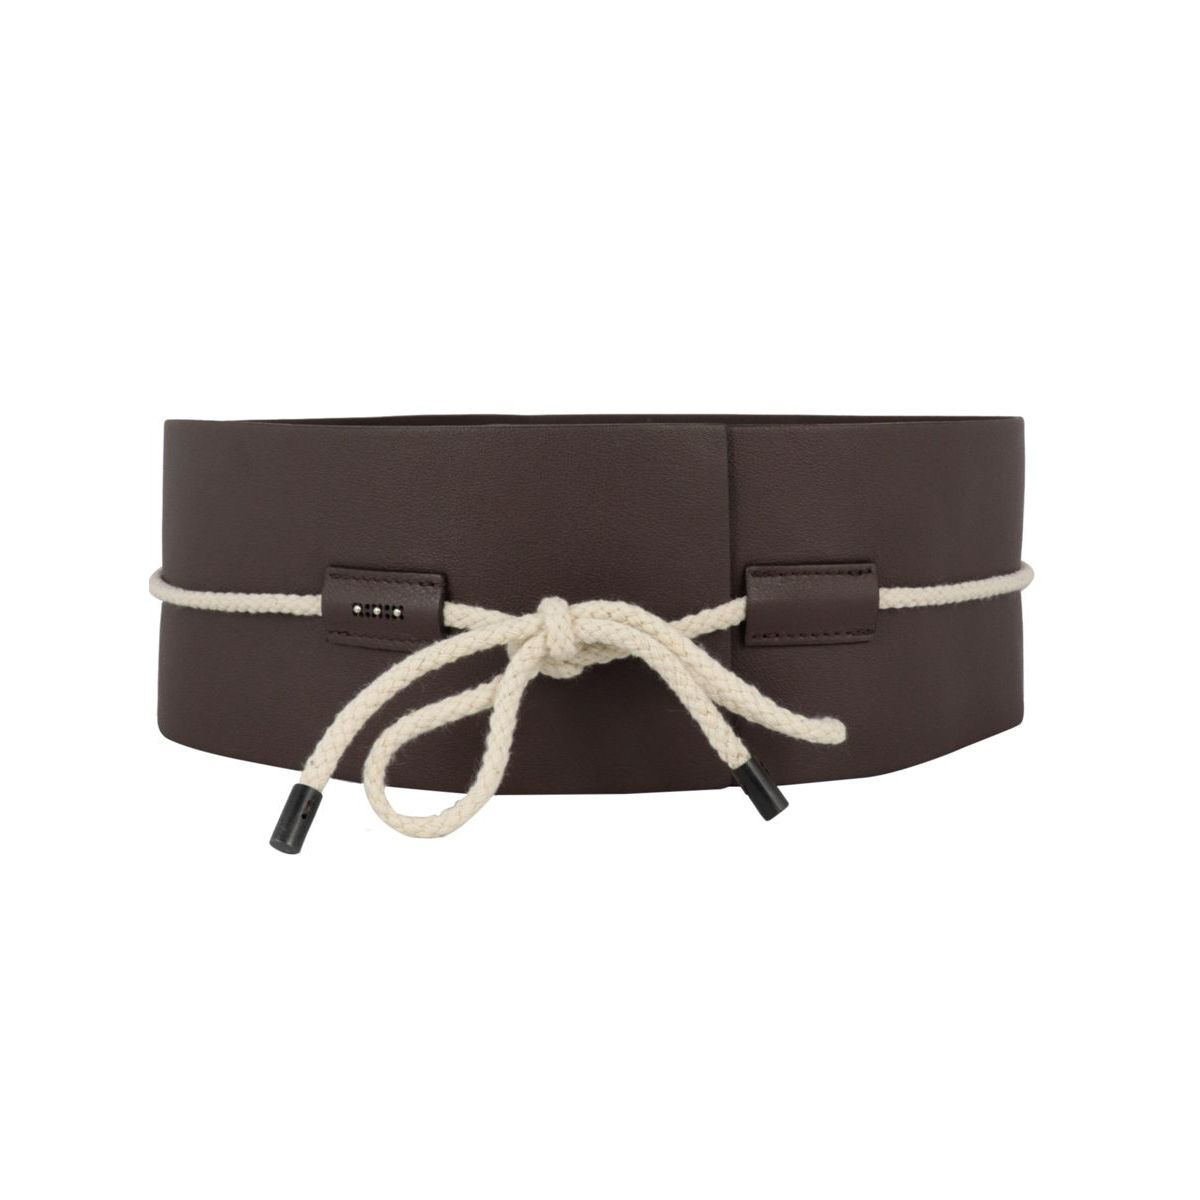 Bustier belt in nappa and natural rope Moro PESERICO